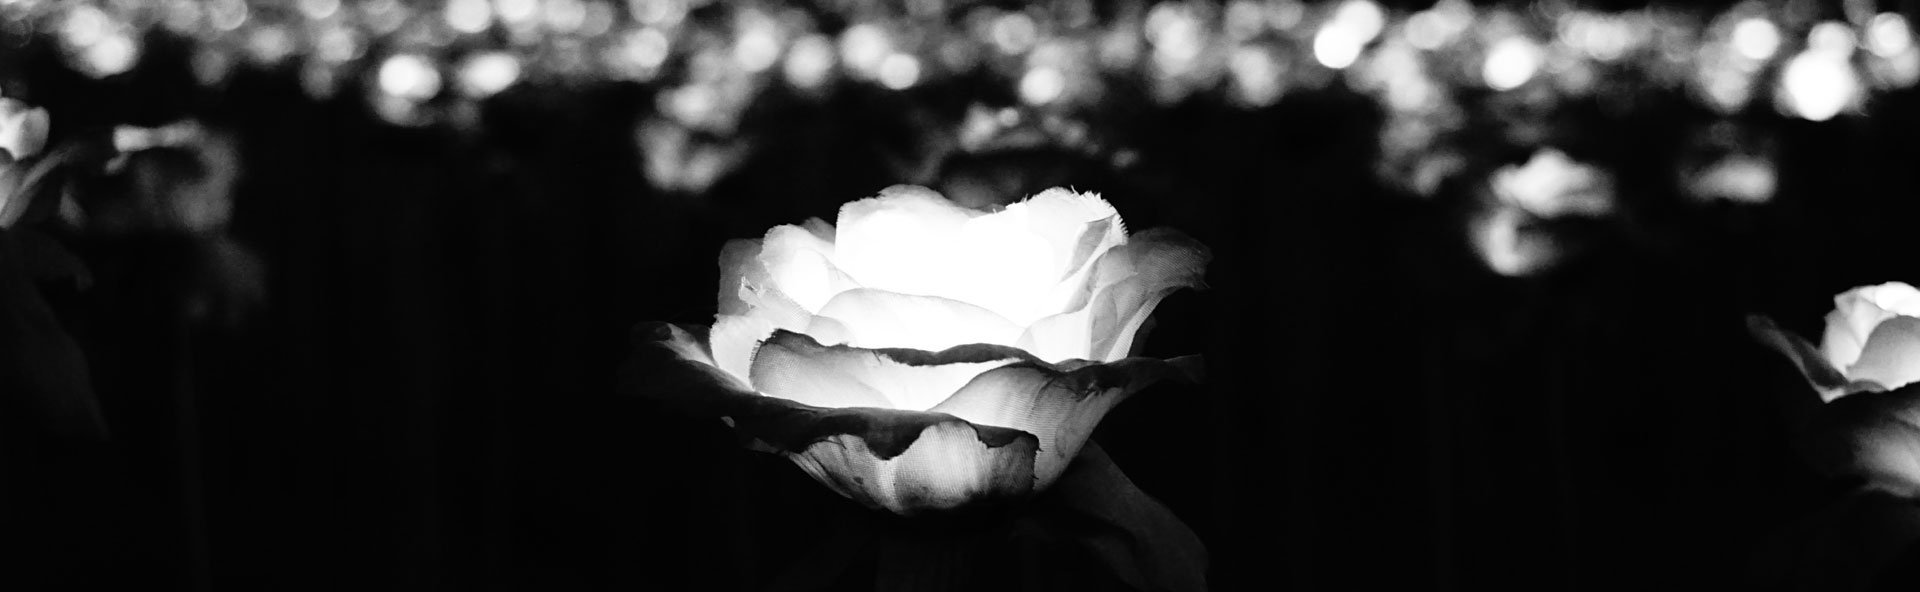 Black and White Photo of Beautiful Flower